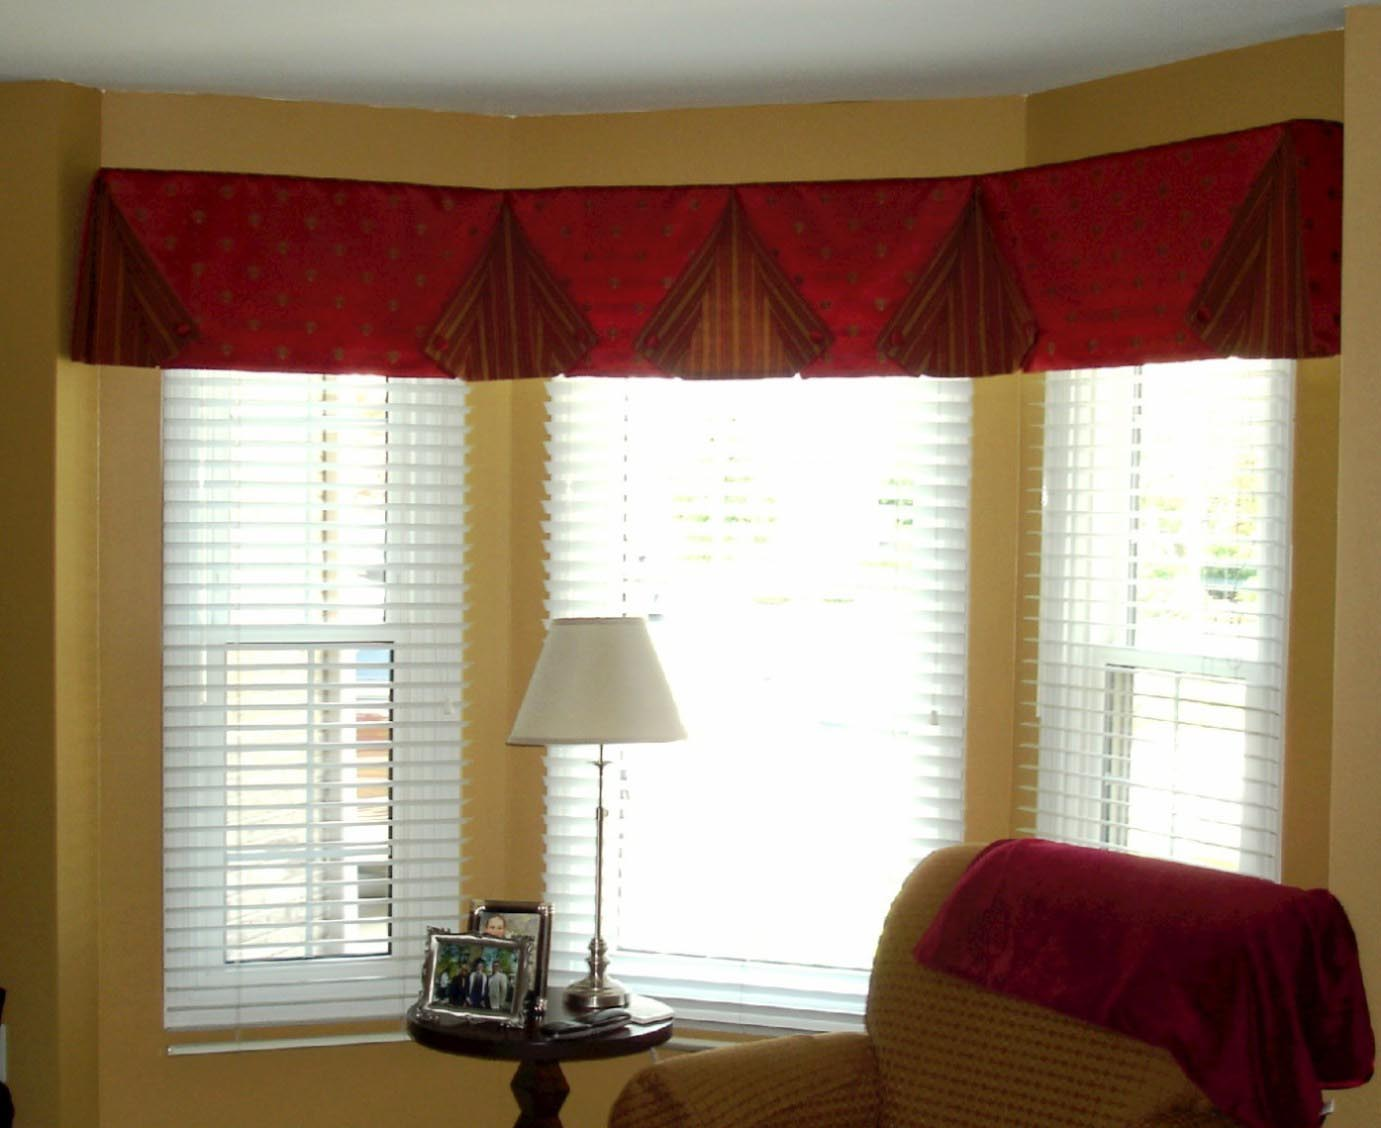 living room valance ideas window treatments design ideas. Black Bedroom Furniture Sets. Home Design Ideas